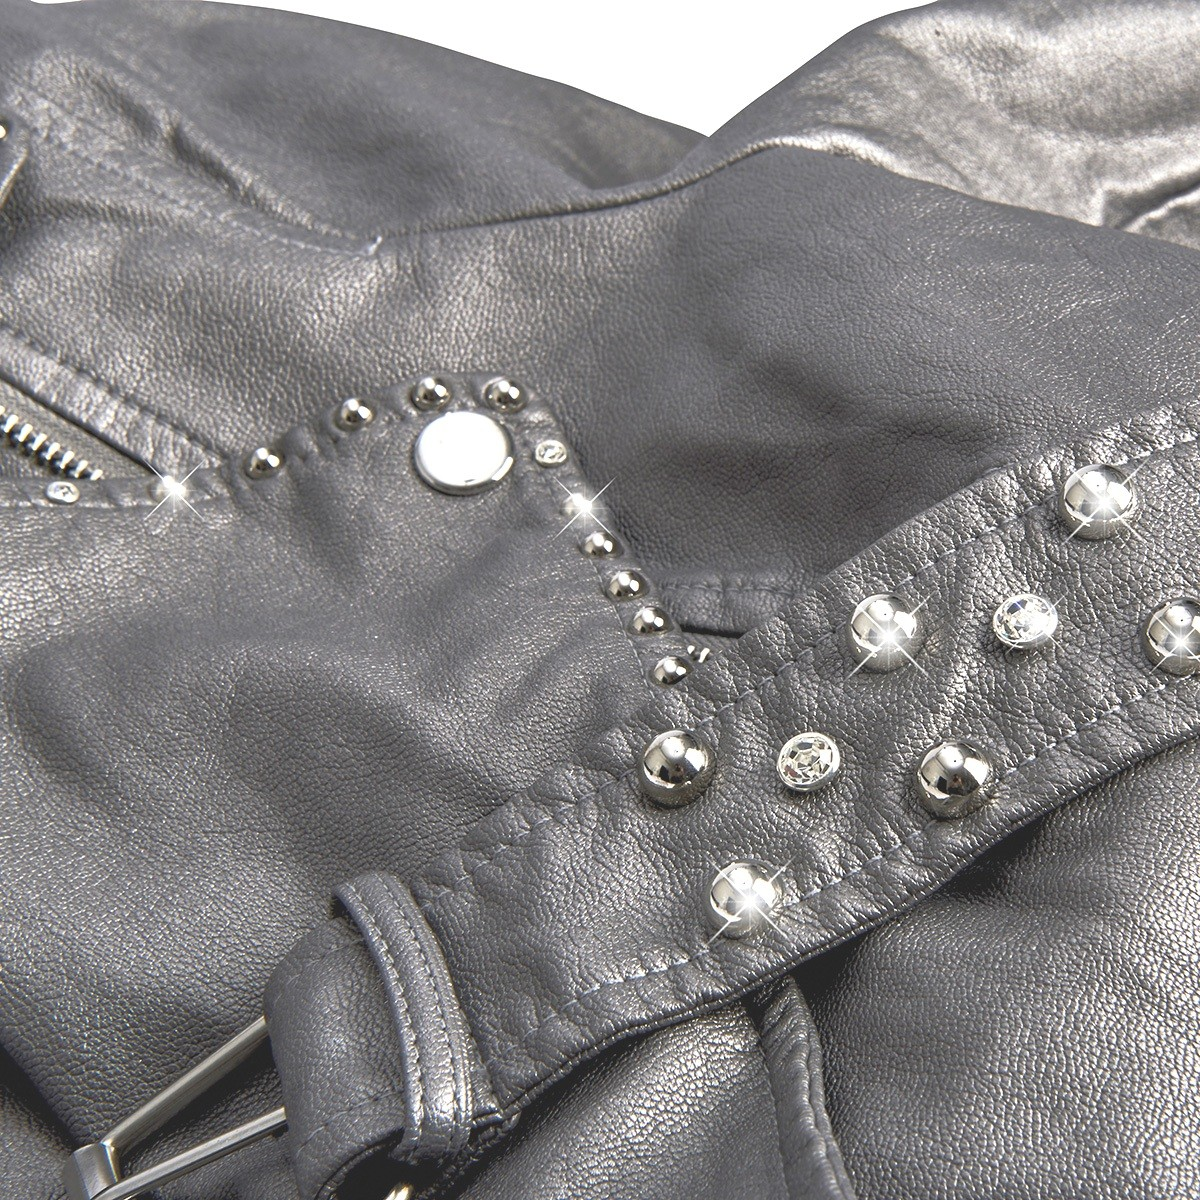 601cae0eeb4d ... Women s eco-leather jacket with patches and crystals